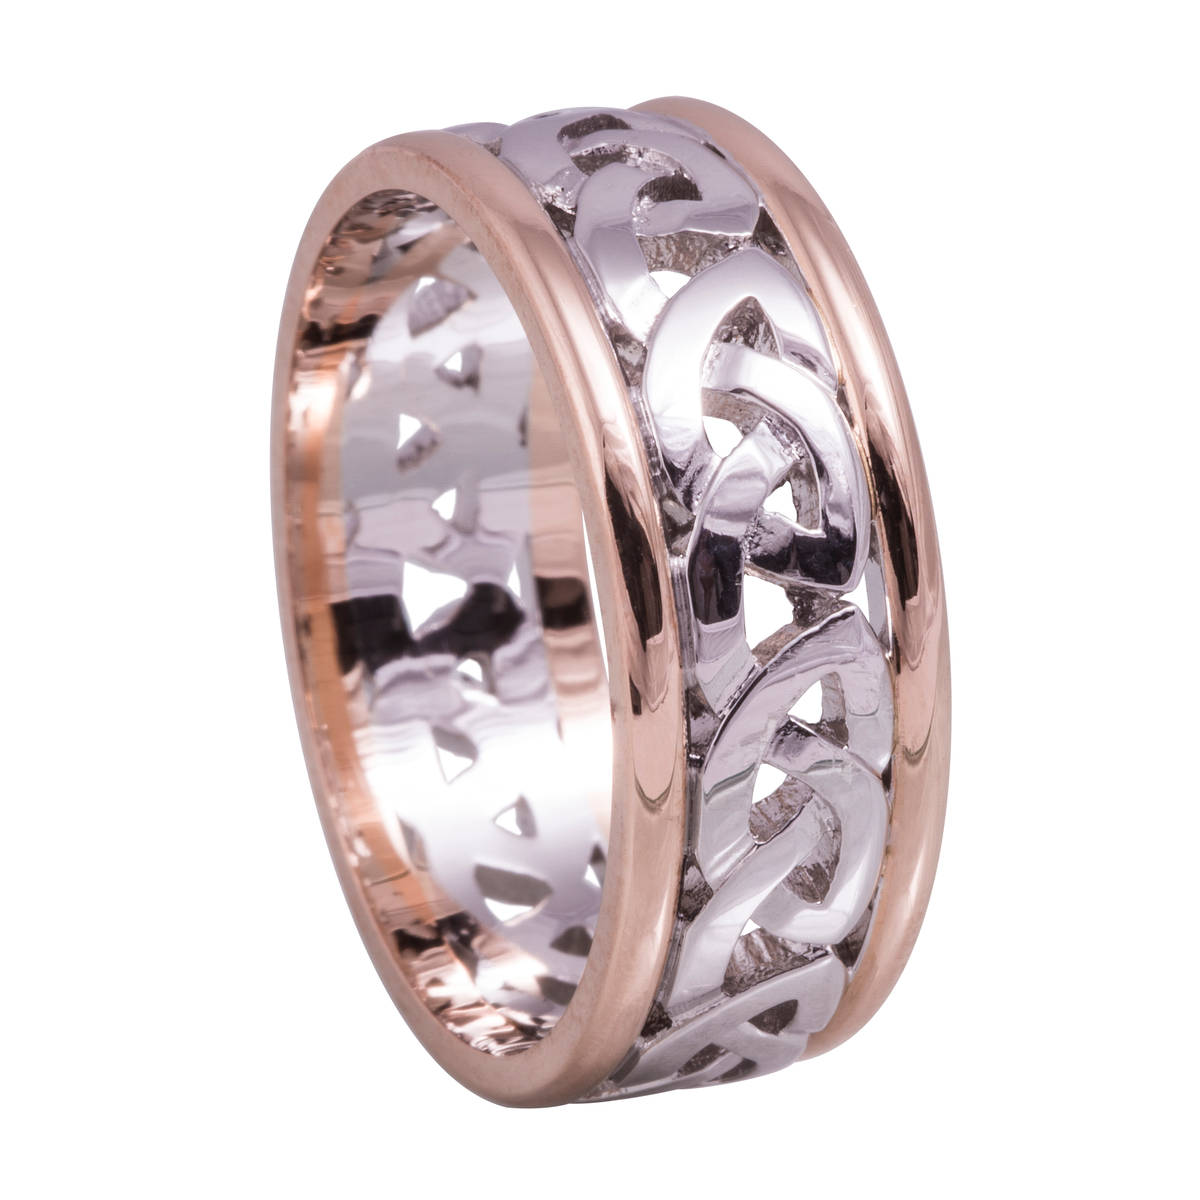 18 carat white gold centred man'sCeltic knot ring with rose gold heavy rims.A very comfortable and detailed ring for every day wear.